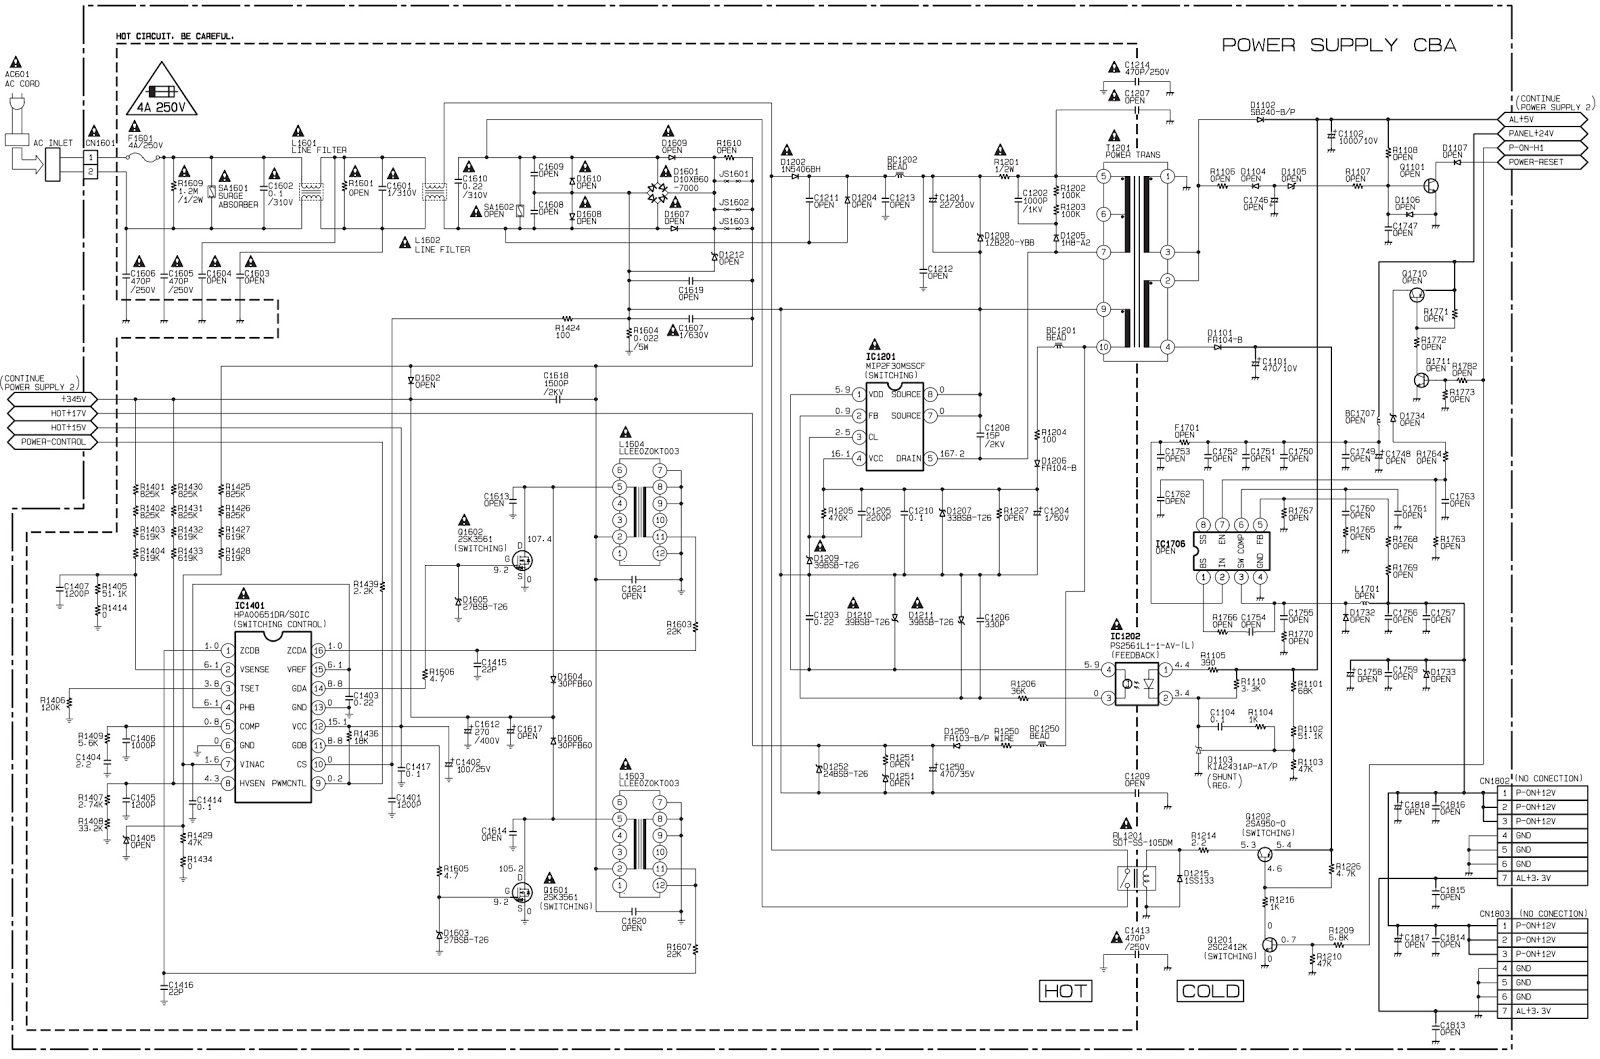 Wiring Schematic 2003 F7 Diagram Will Be A Thing 1974 Kawasaki Diagrams Case 1845c Fuel Shut Off 75xt Parts